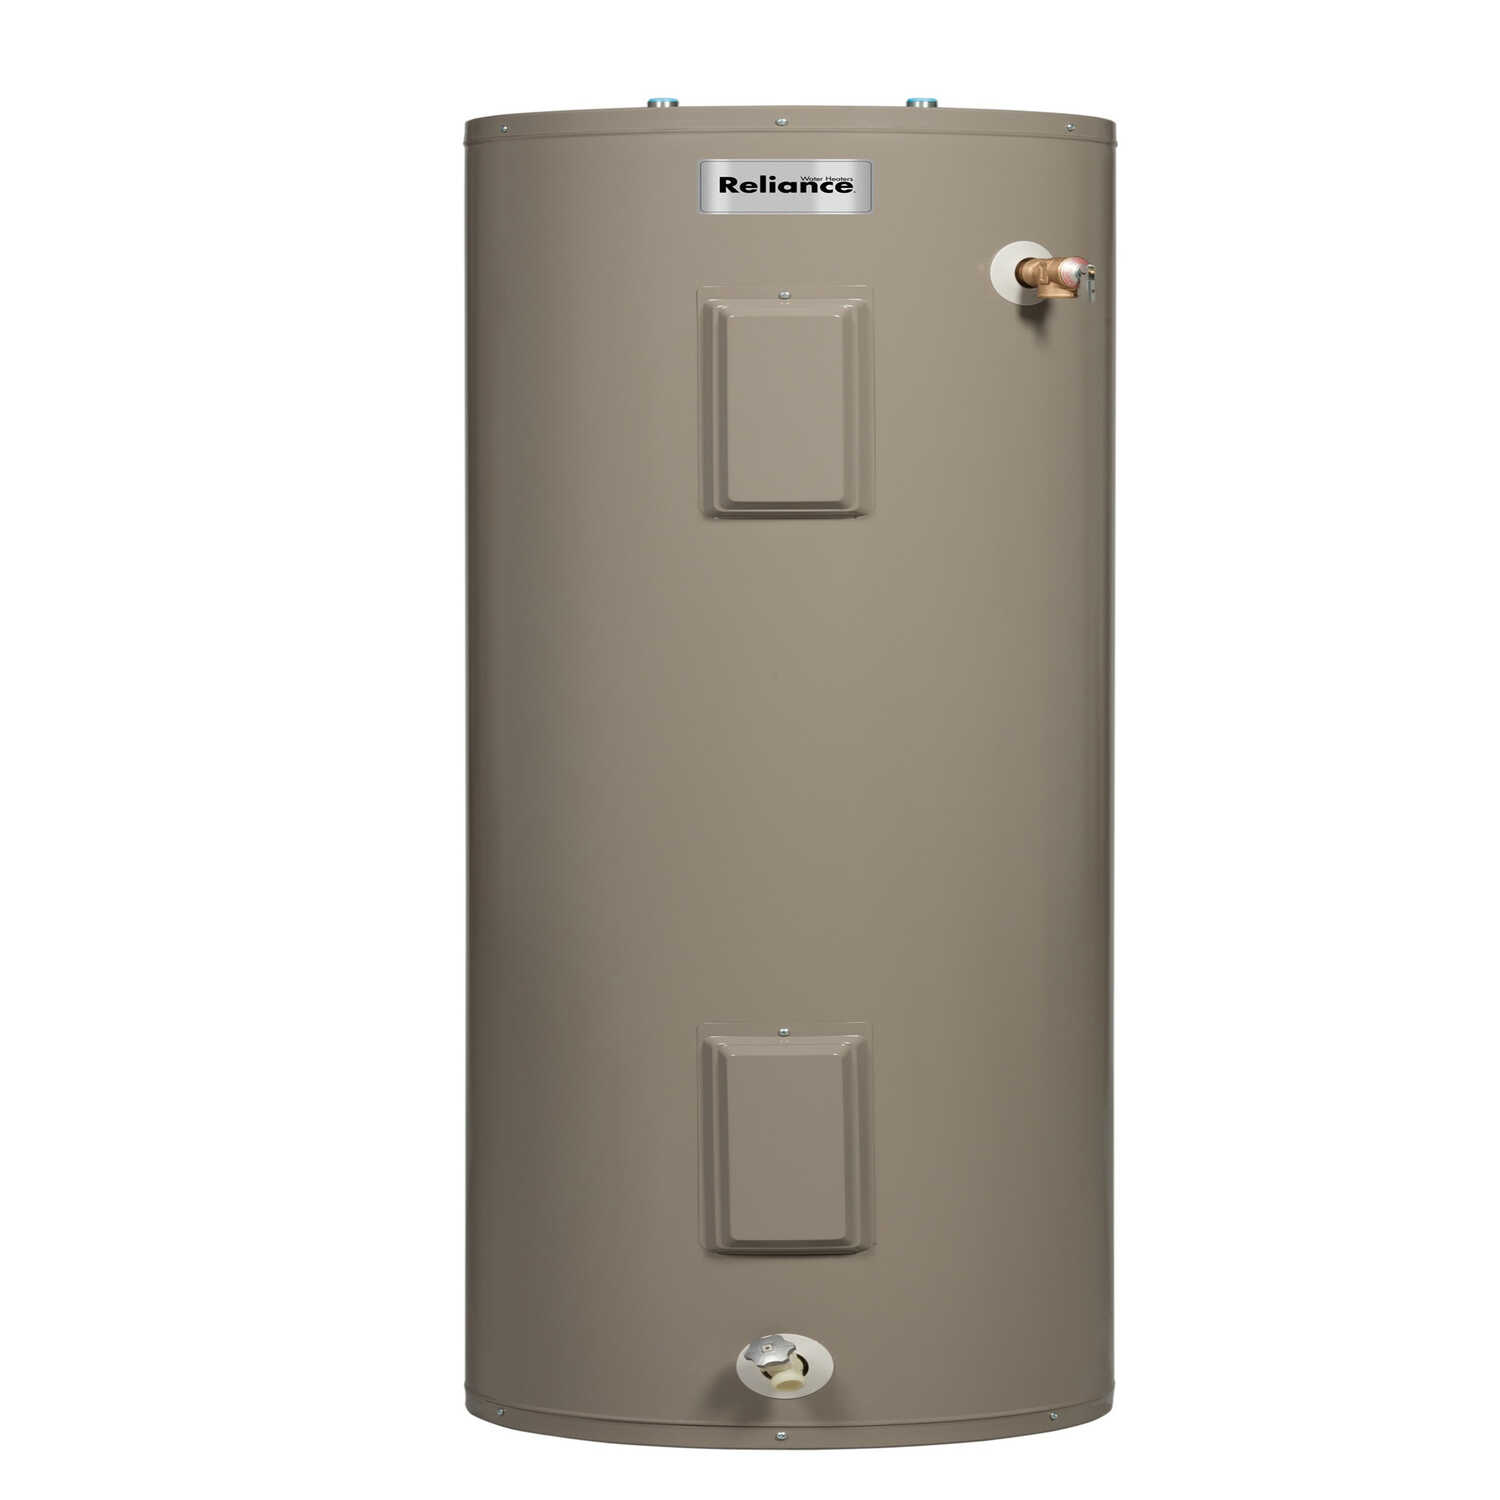 Reliance  30 gal. Electric  Water Heater